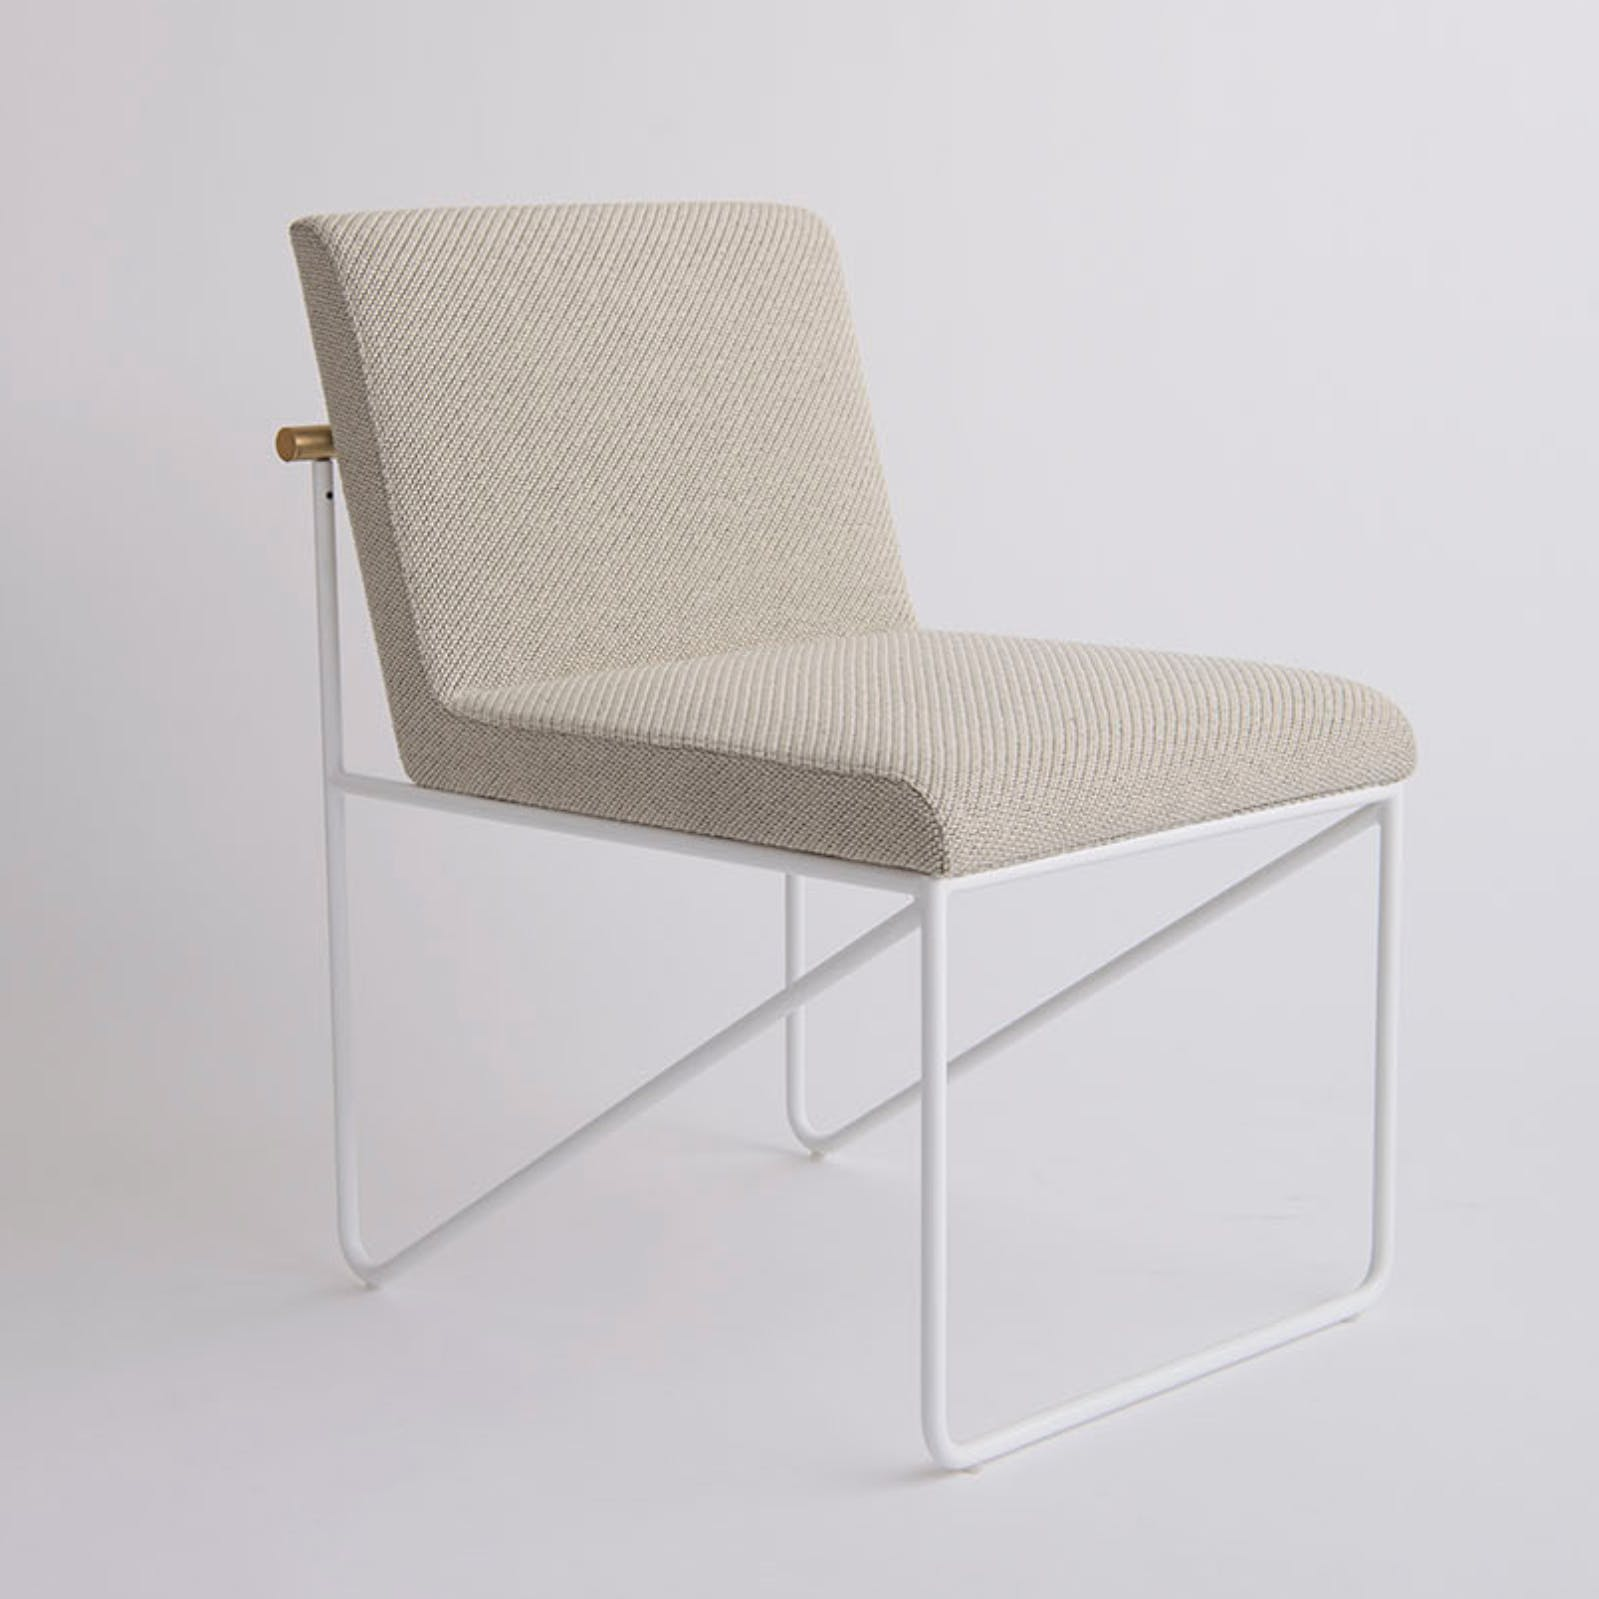 Phase Design Kickstand Chair Angle Haute Living